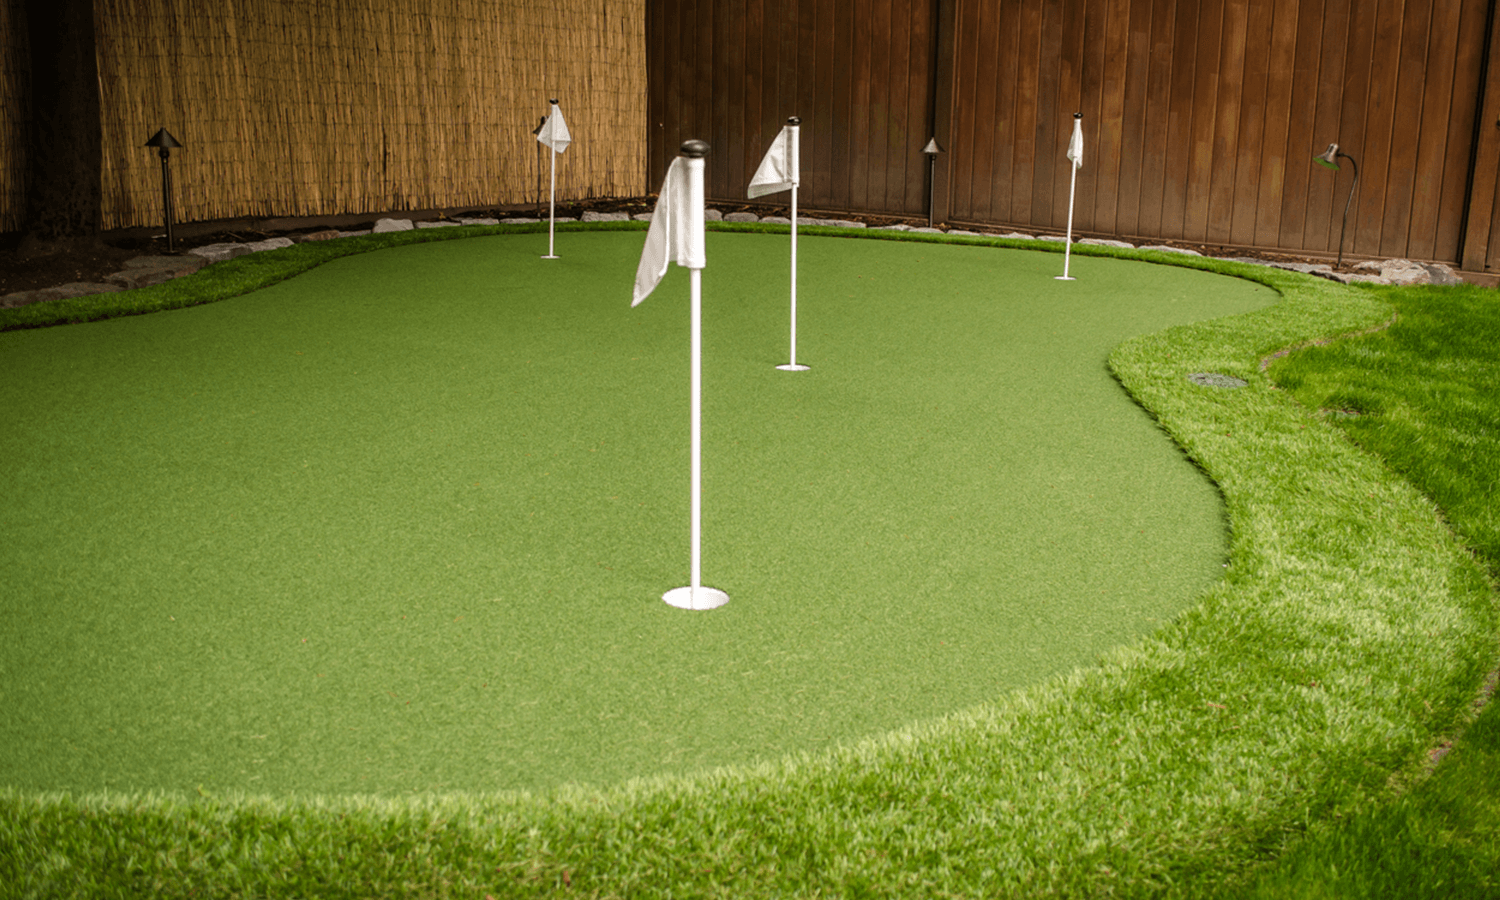 Landscape ConstructionGolf Course quality design, shape of artificial and real turf